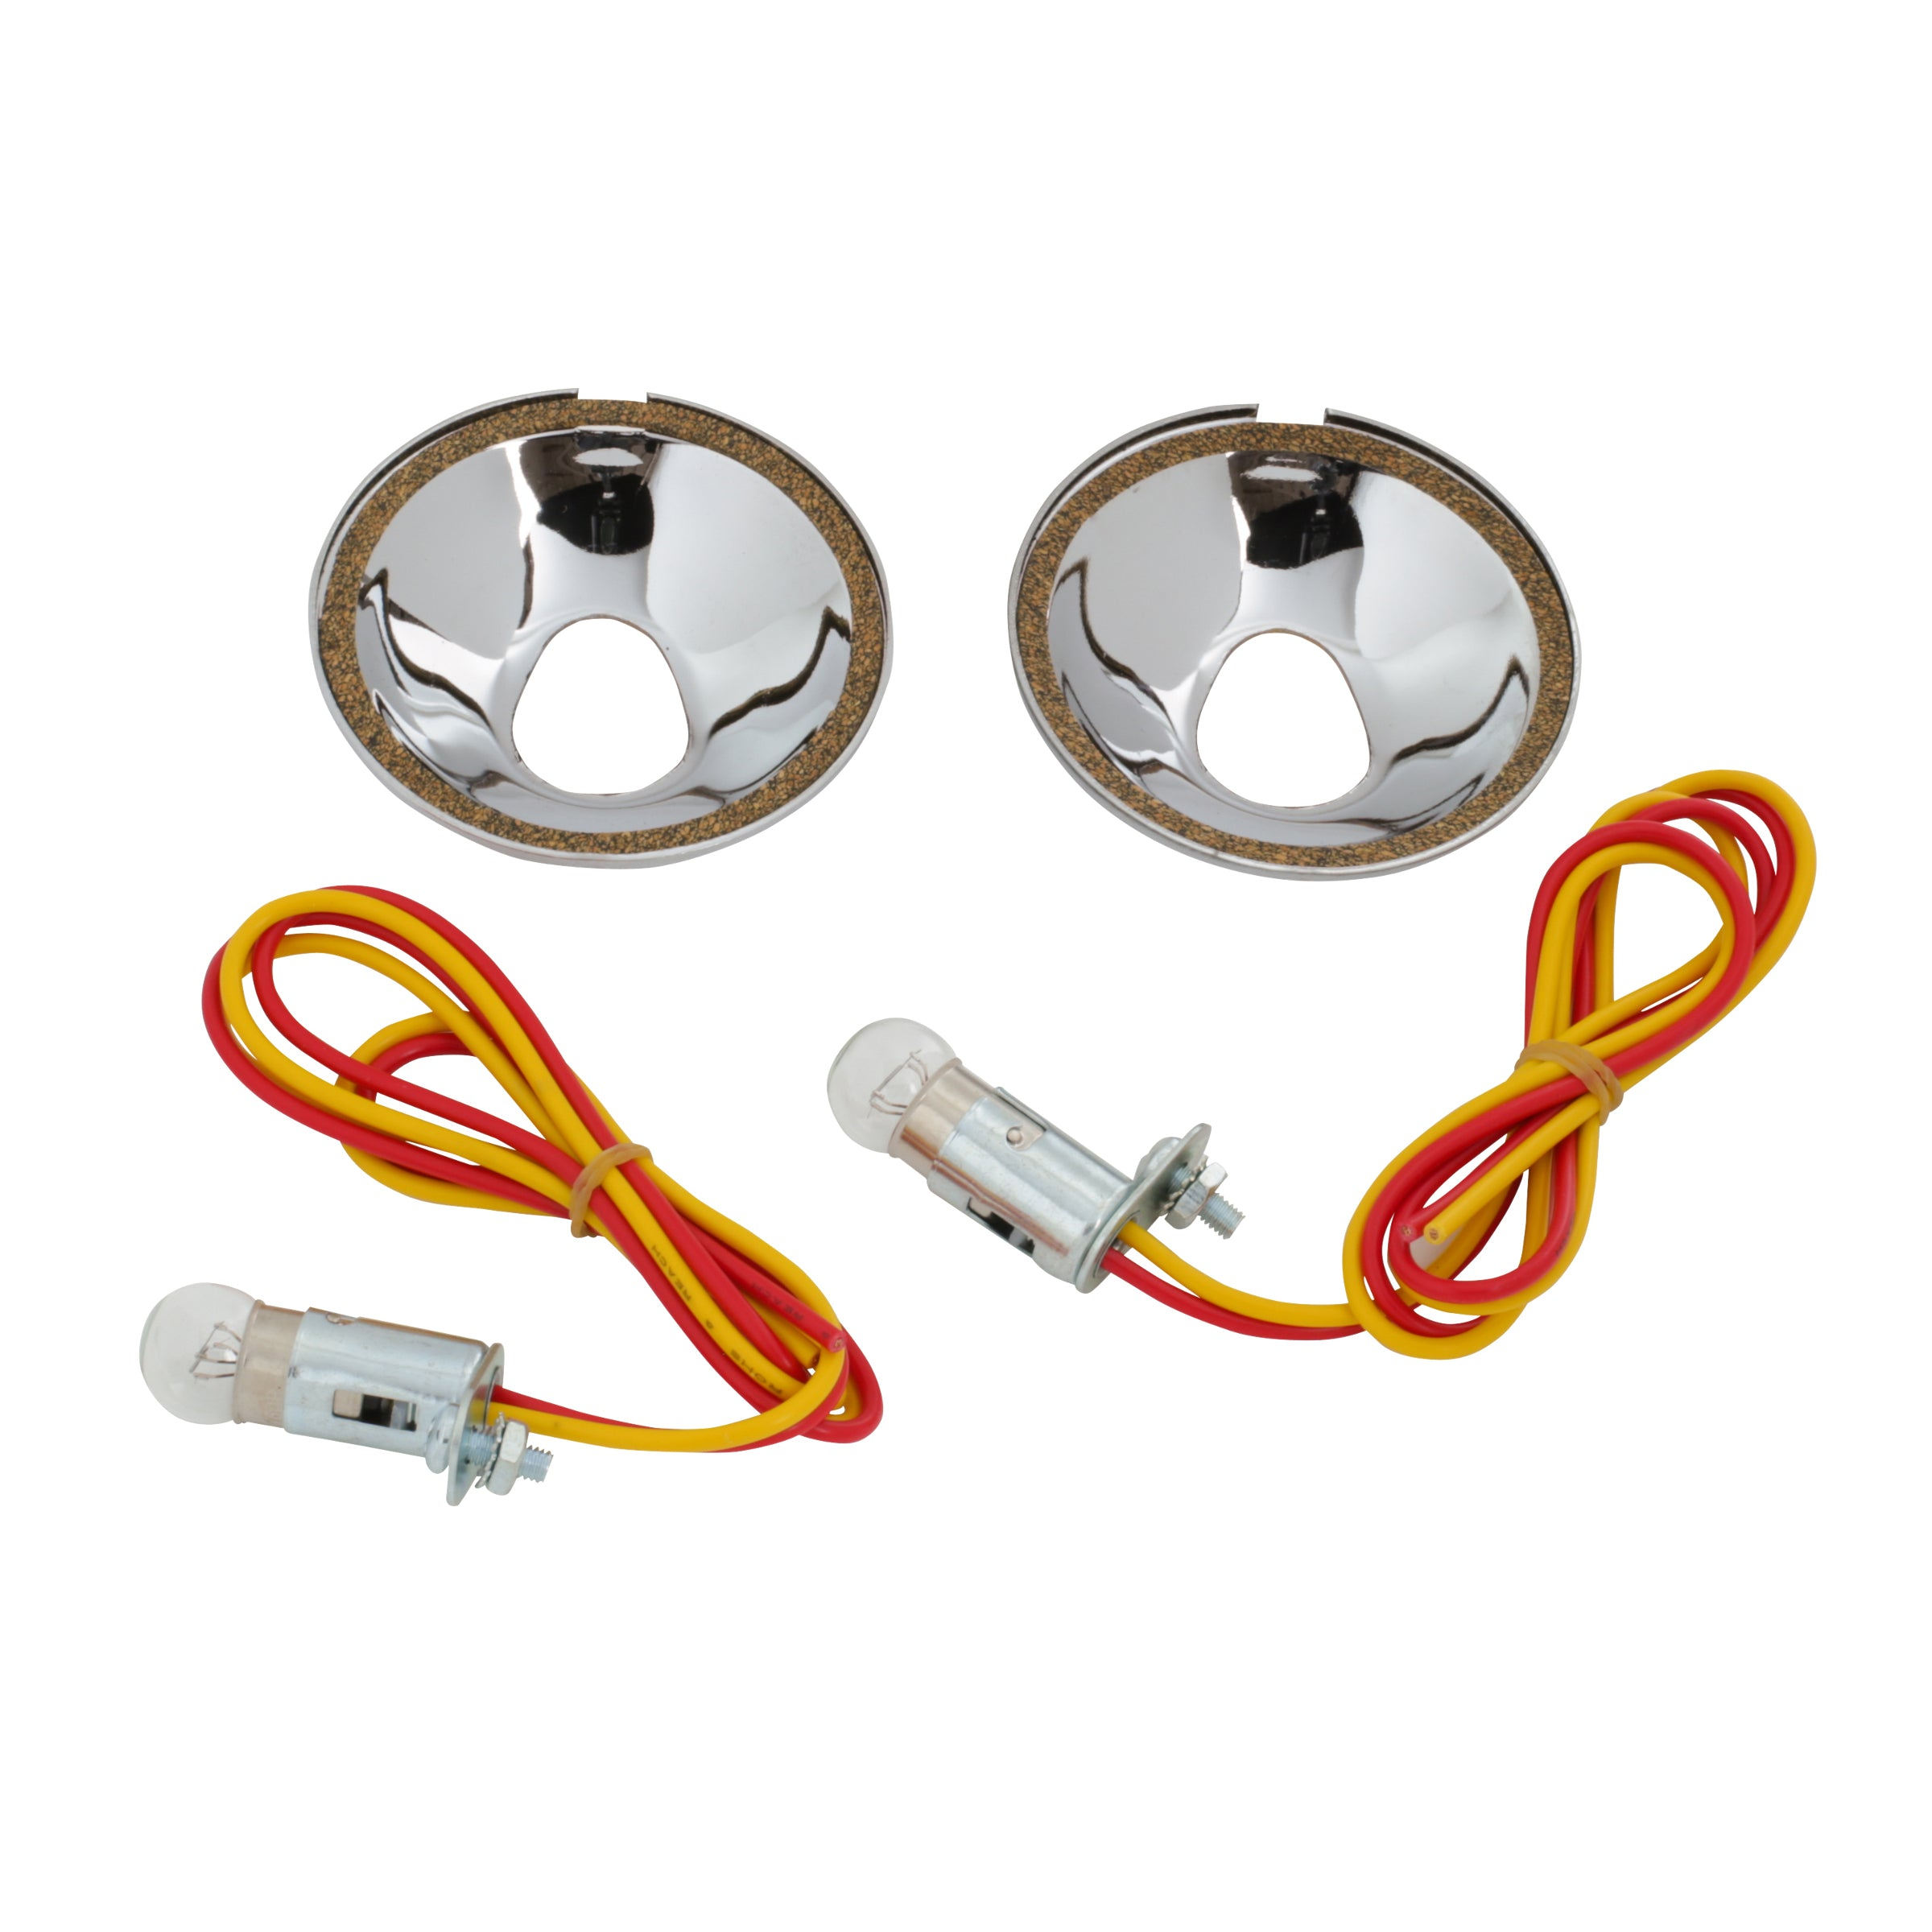 Turn Signal Adapter Kit for Cowl Lights • 1932